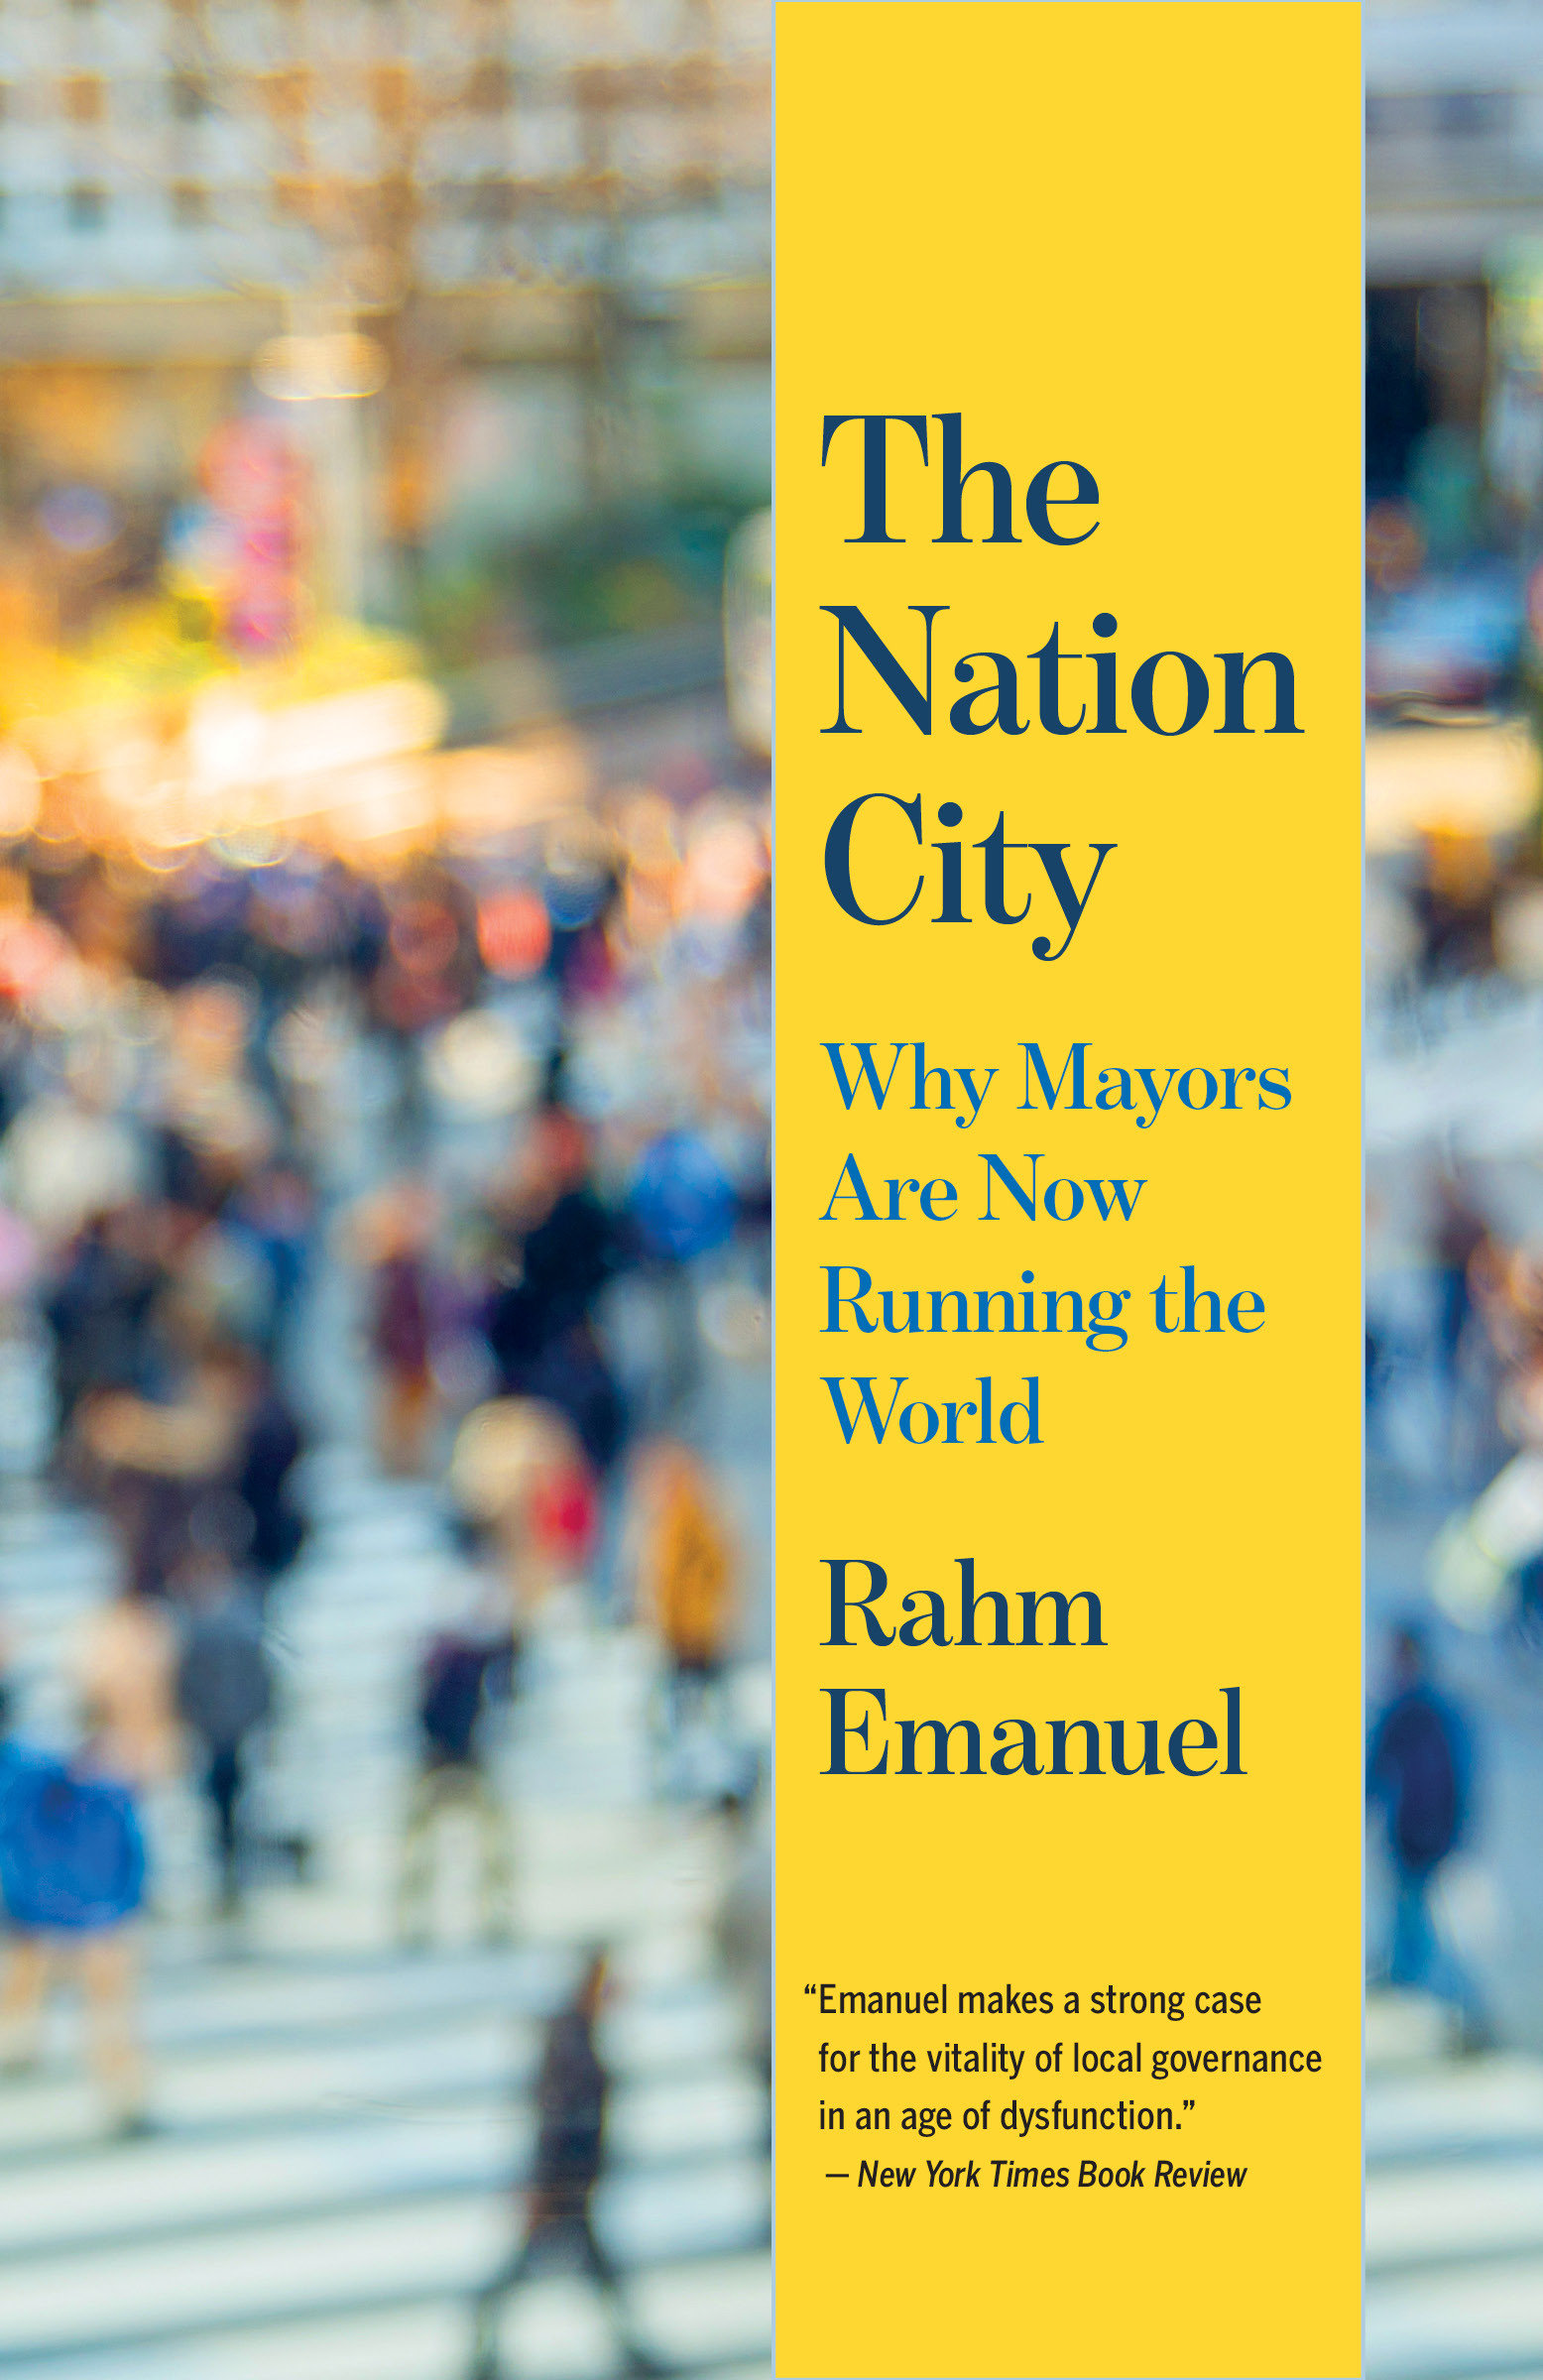 The Nation City Why Mayors Are Now Running the World